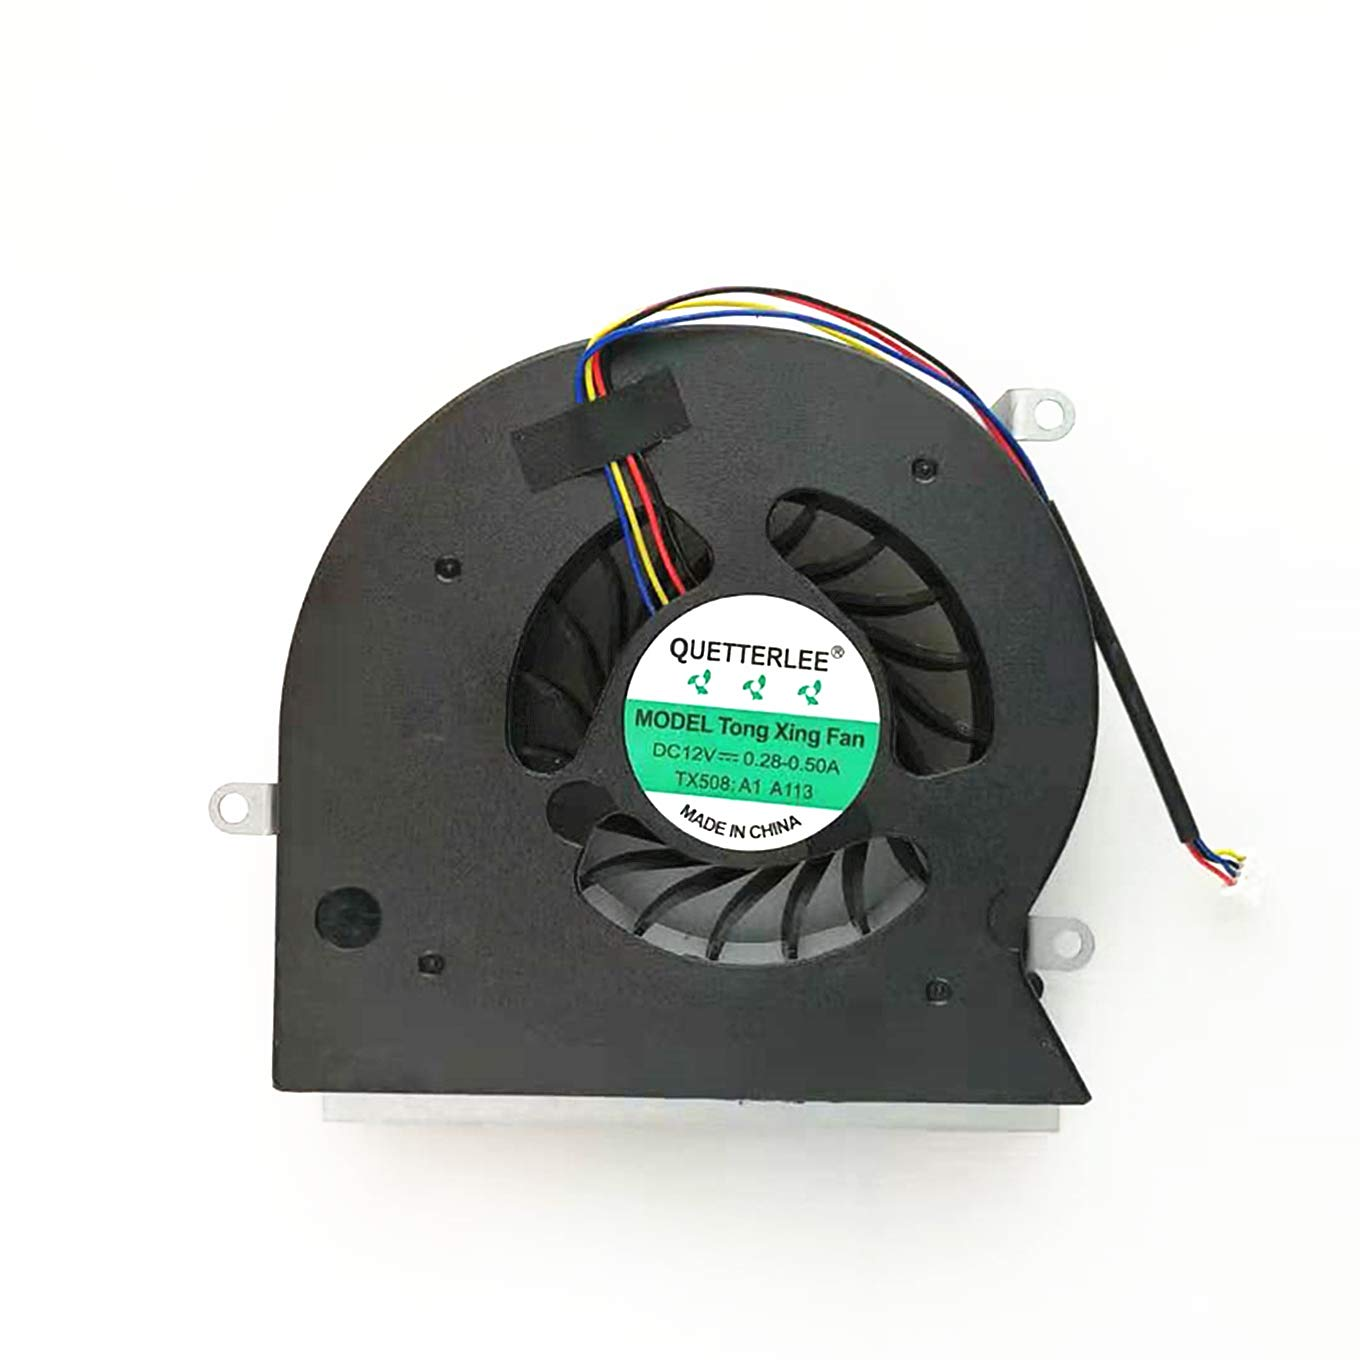 QUETTERLEE Replacement New Laptop Cooling fan for MSI GT62 GT62VR GT62 6RD 6RE 7RE MS-16L1 MS-16L2 MS-16L3 Terrans Force S5 S6 S5-A1 cooling fan cooler PABD19735BM N322 N395 fan